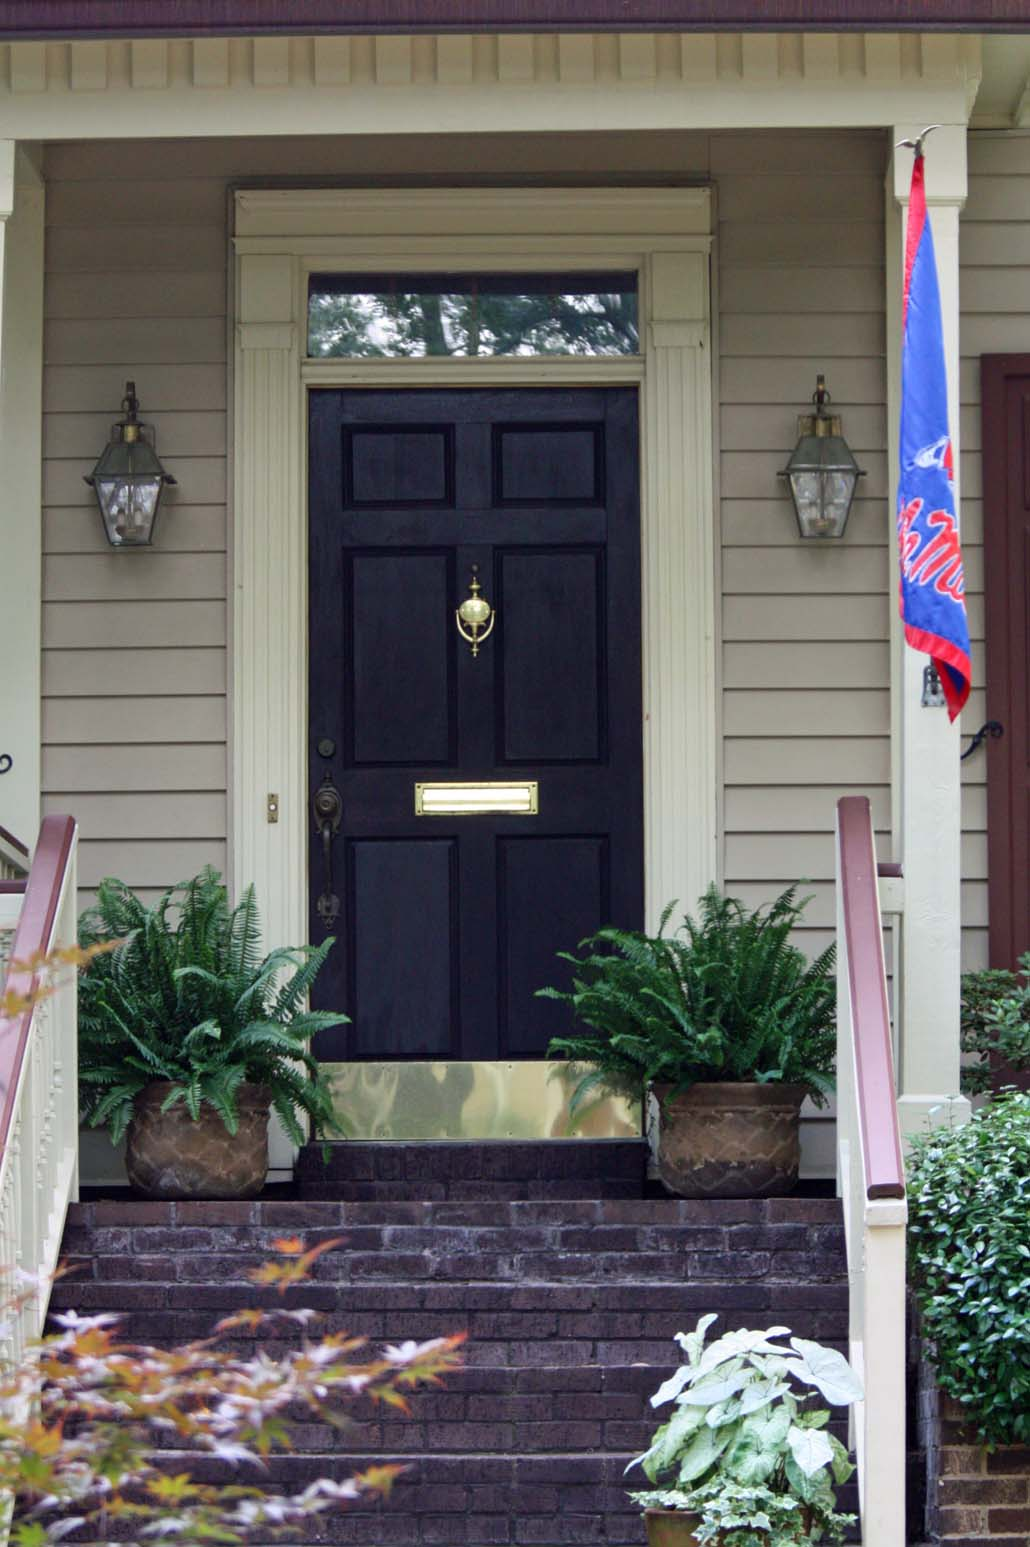 Southern lagniappe the curb appeal of doors Curb appeal doors